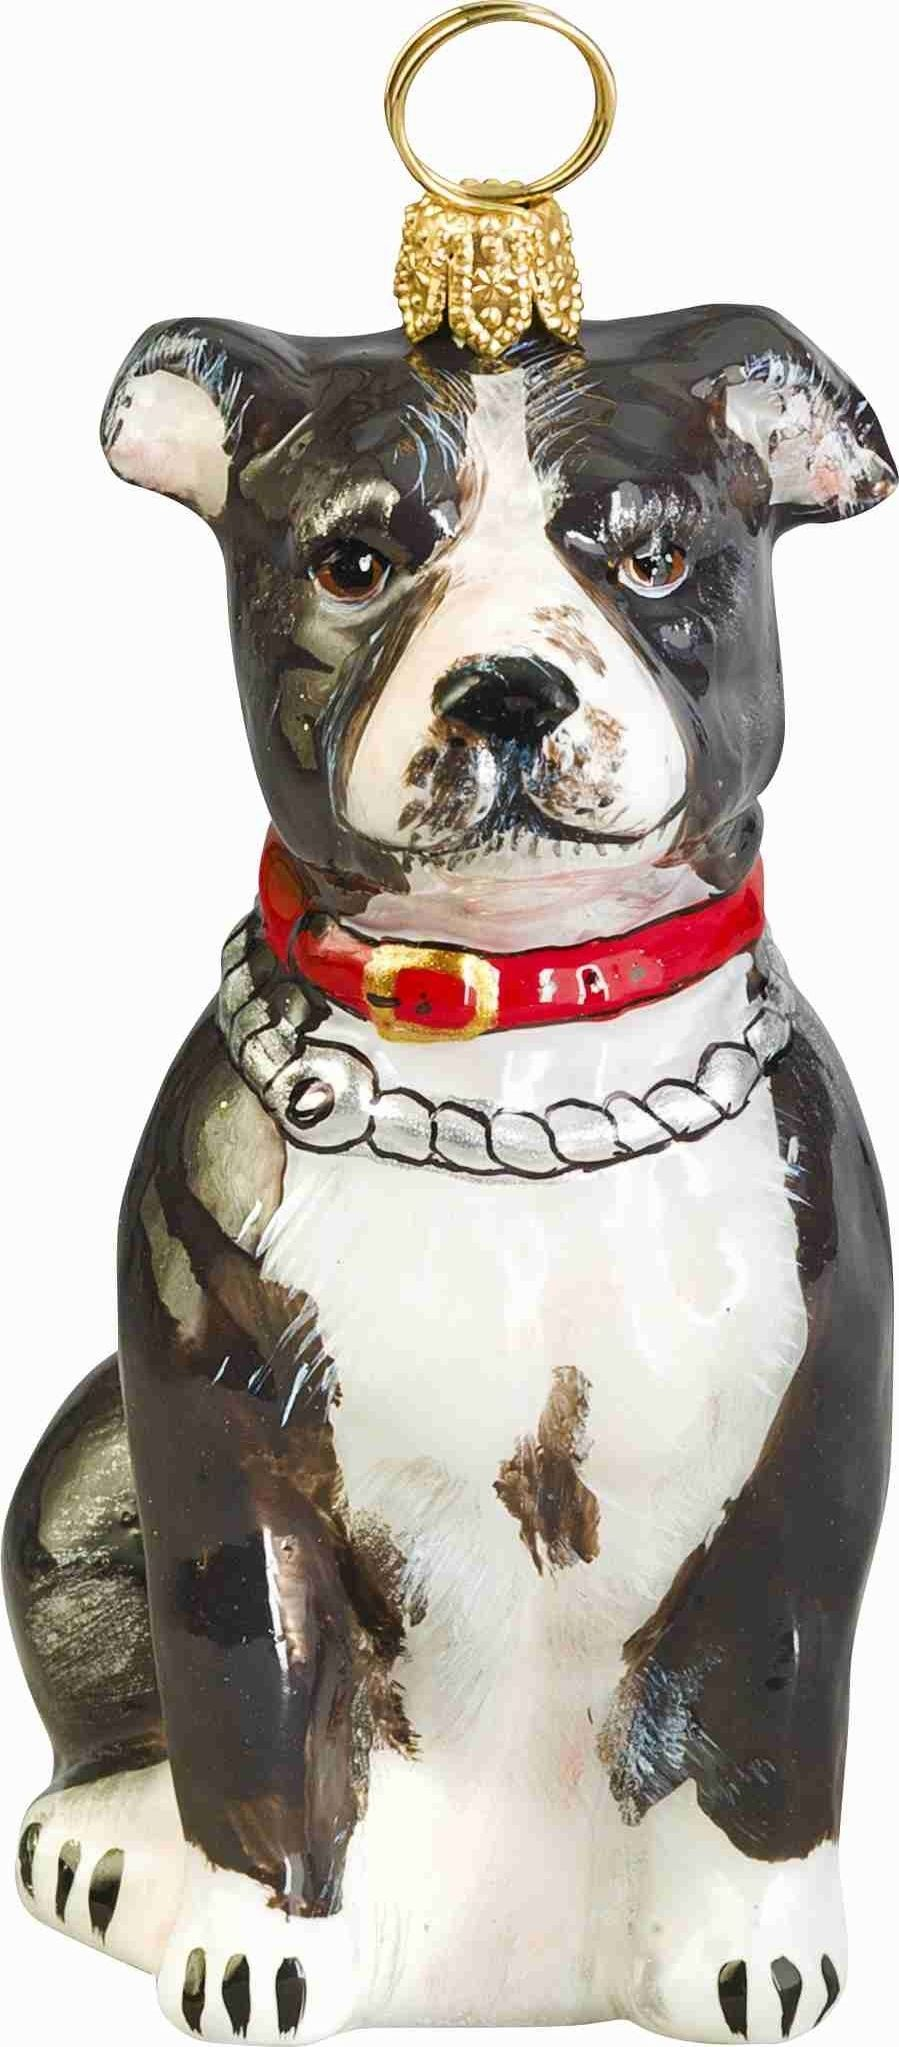 Pitbull Christmas Ornament.Pin On Animals And Pets